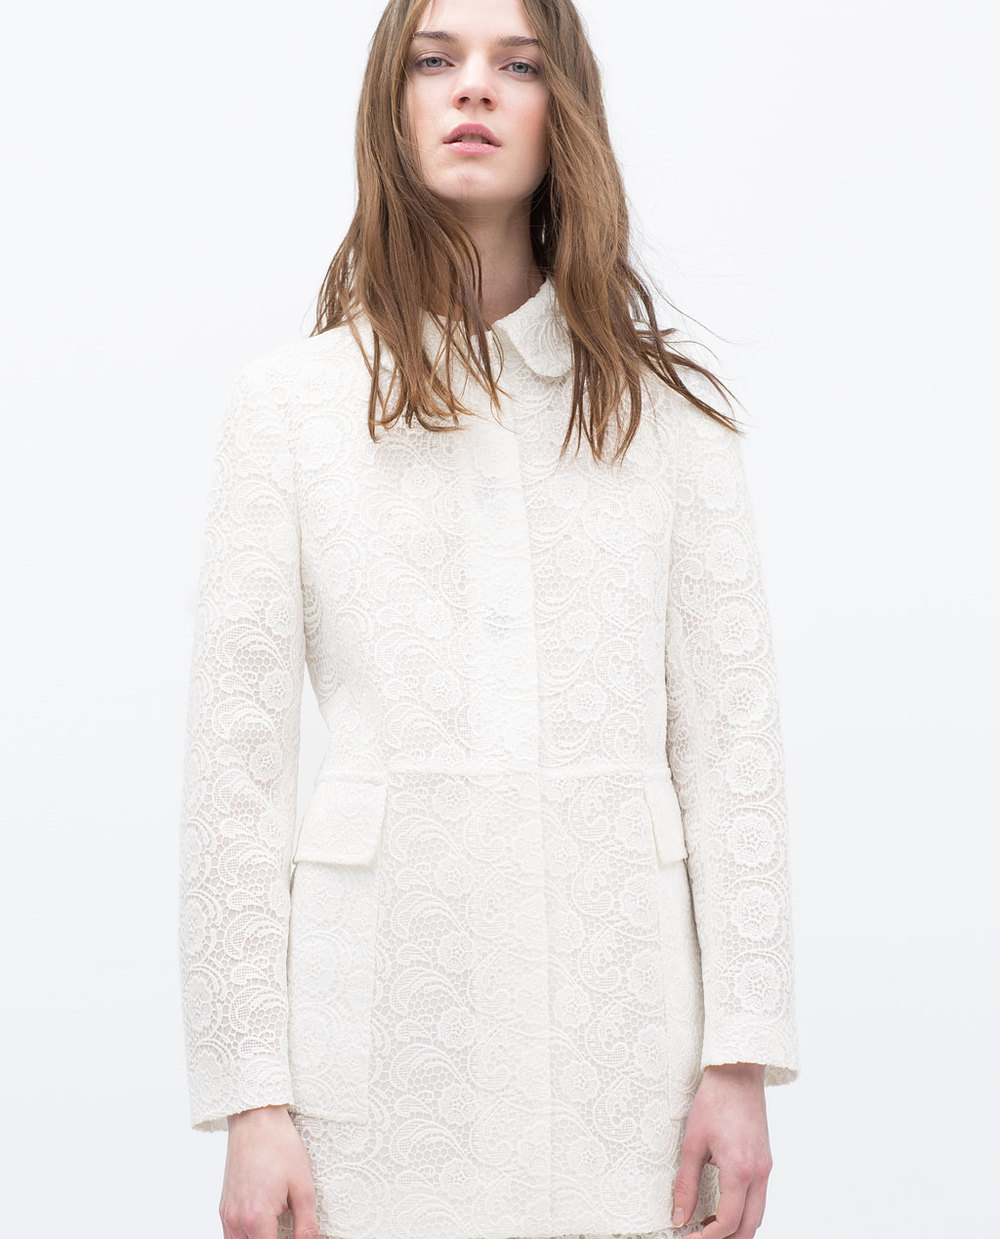 Zara, Lace Coat £99.99